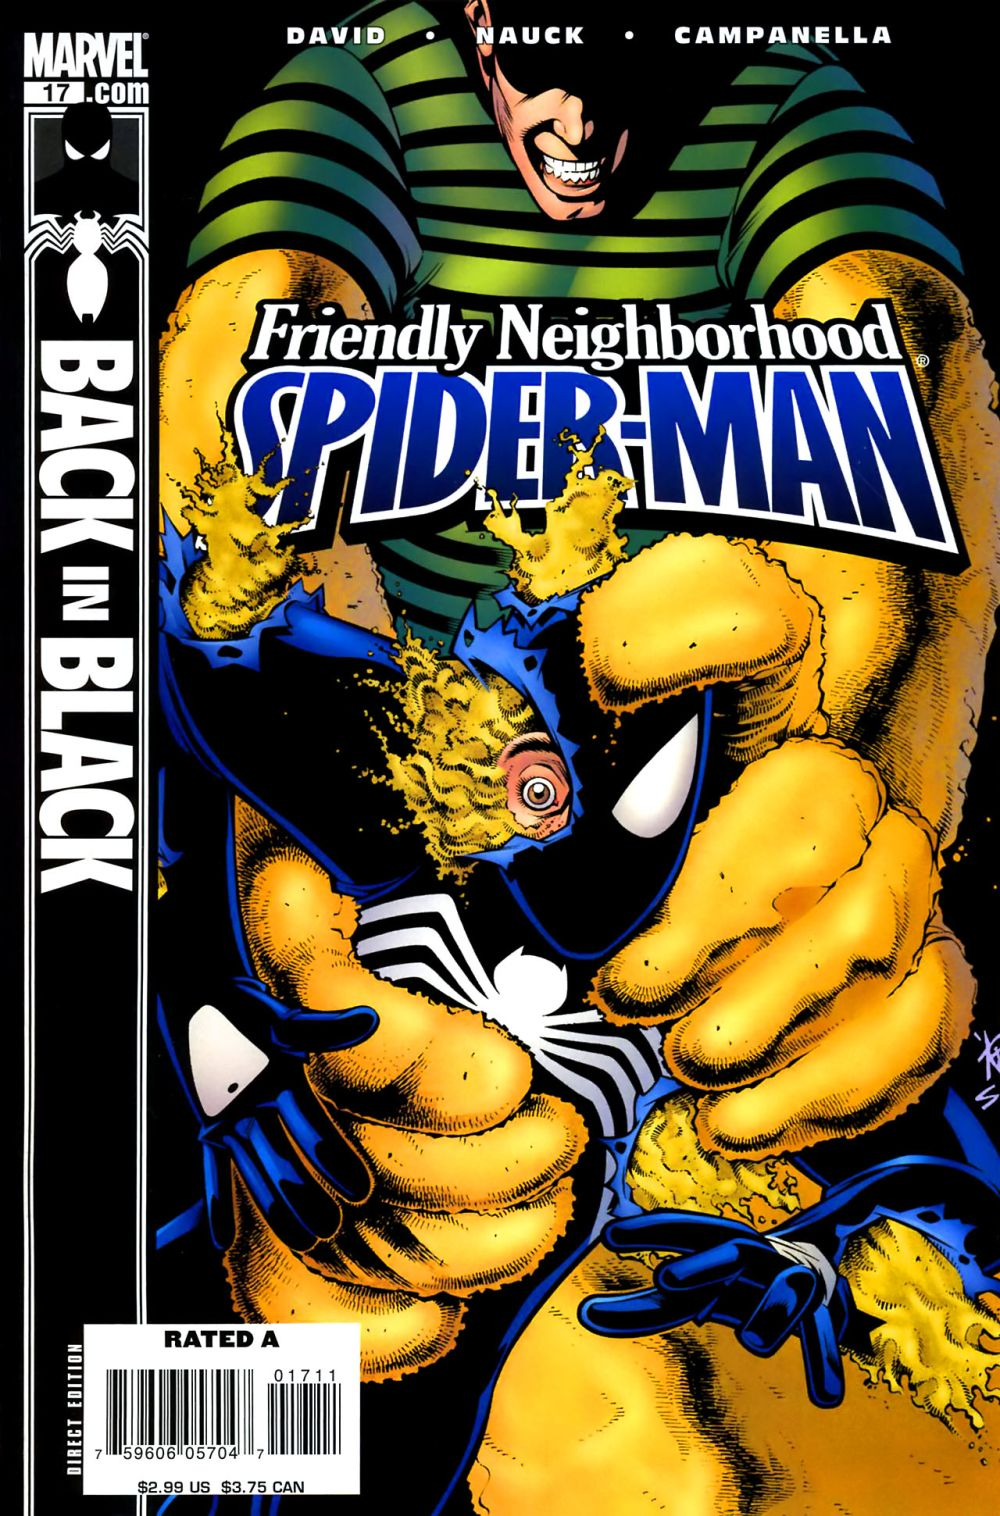 Friendly Neighborhood Spider-Man [Marvel] V1 0017a.jpg